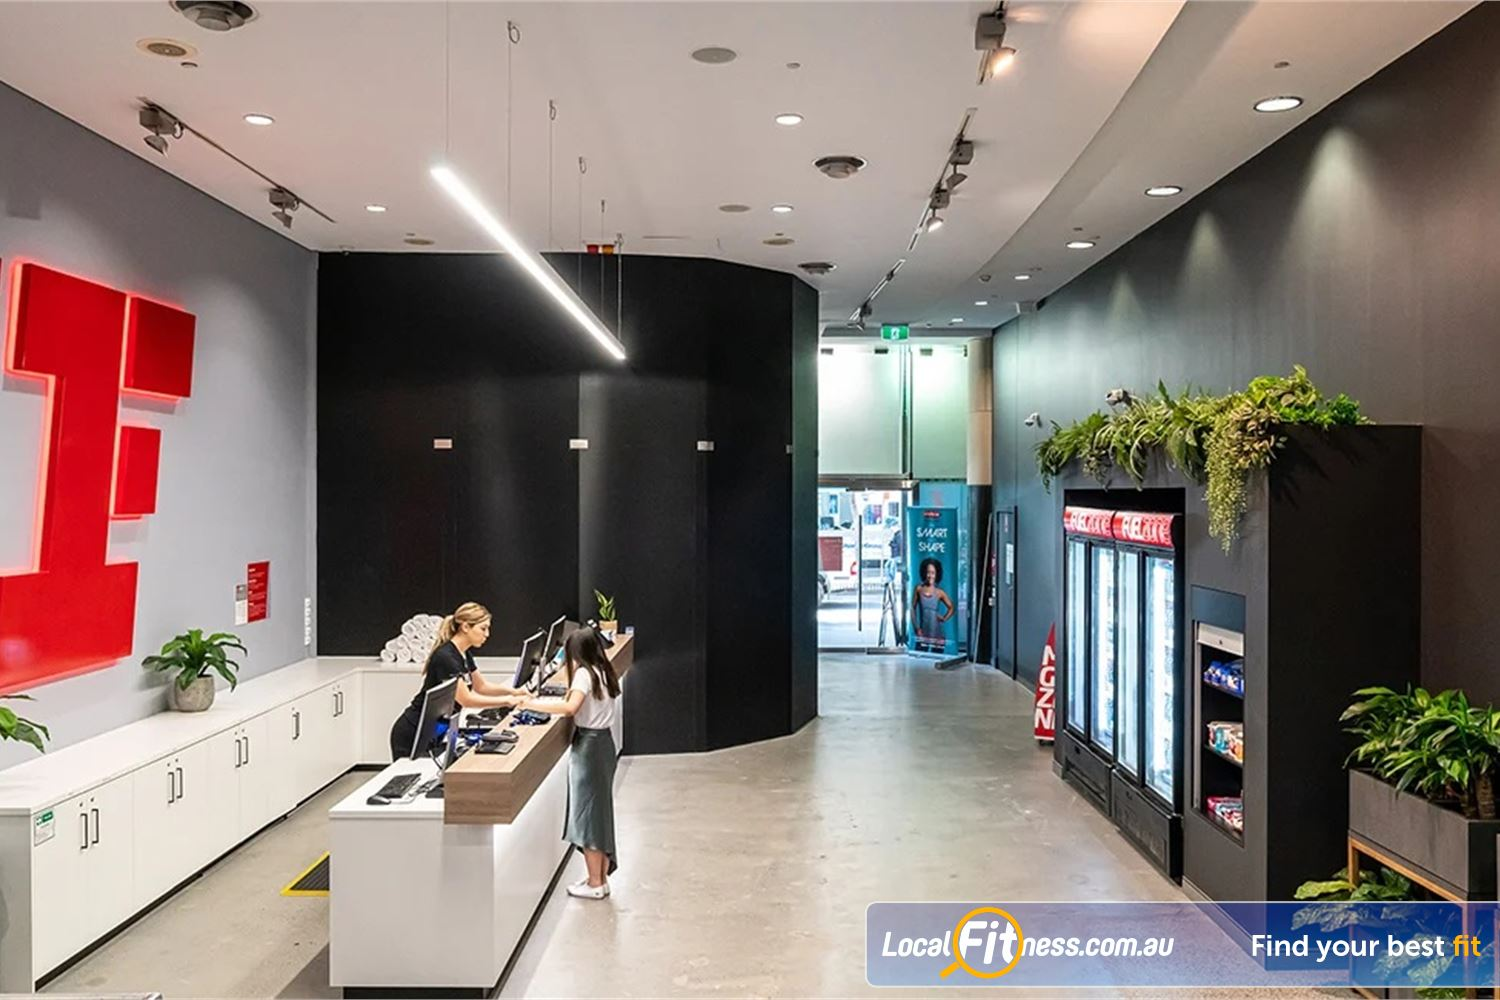 Fitness First Platinum Pitt St Near Alexandria Mc Our Sydney gym team will welcome you to the Sydney Fitness First Platinum in Pitt St.